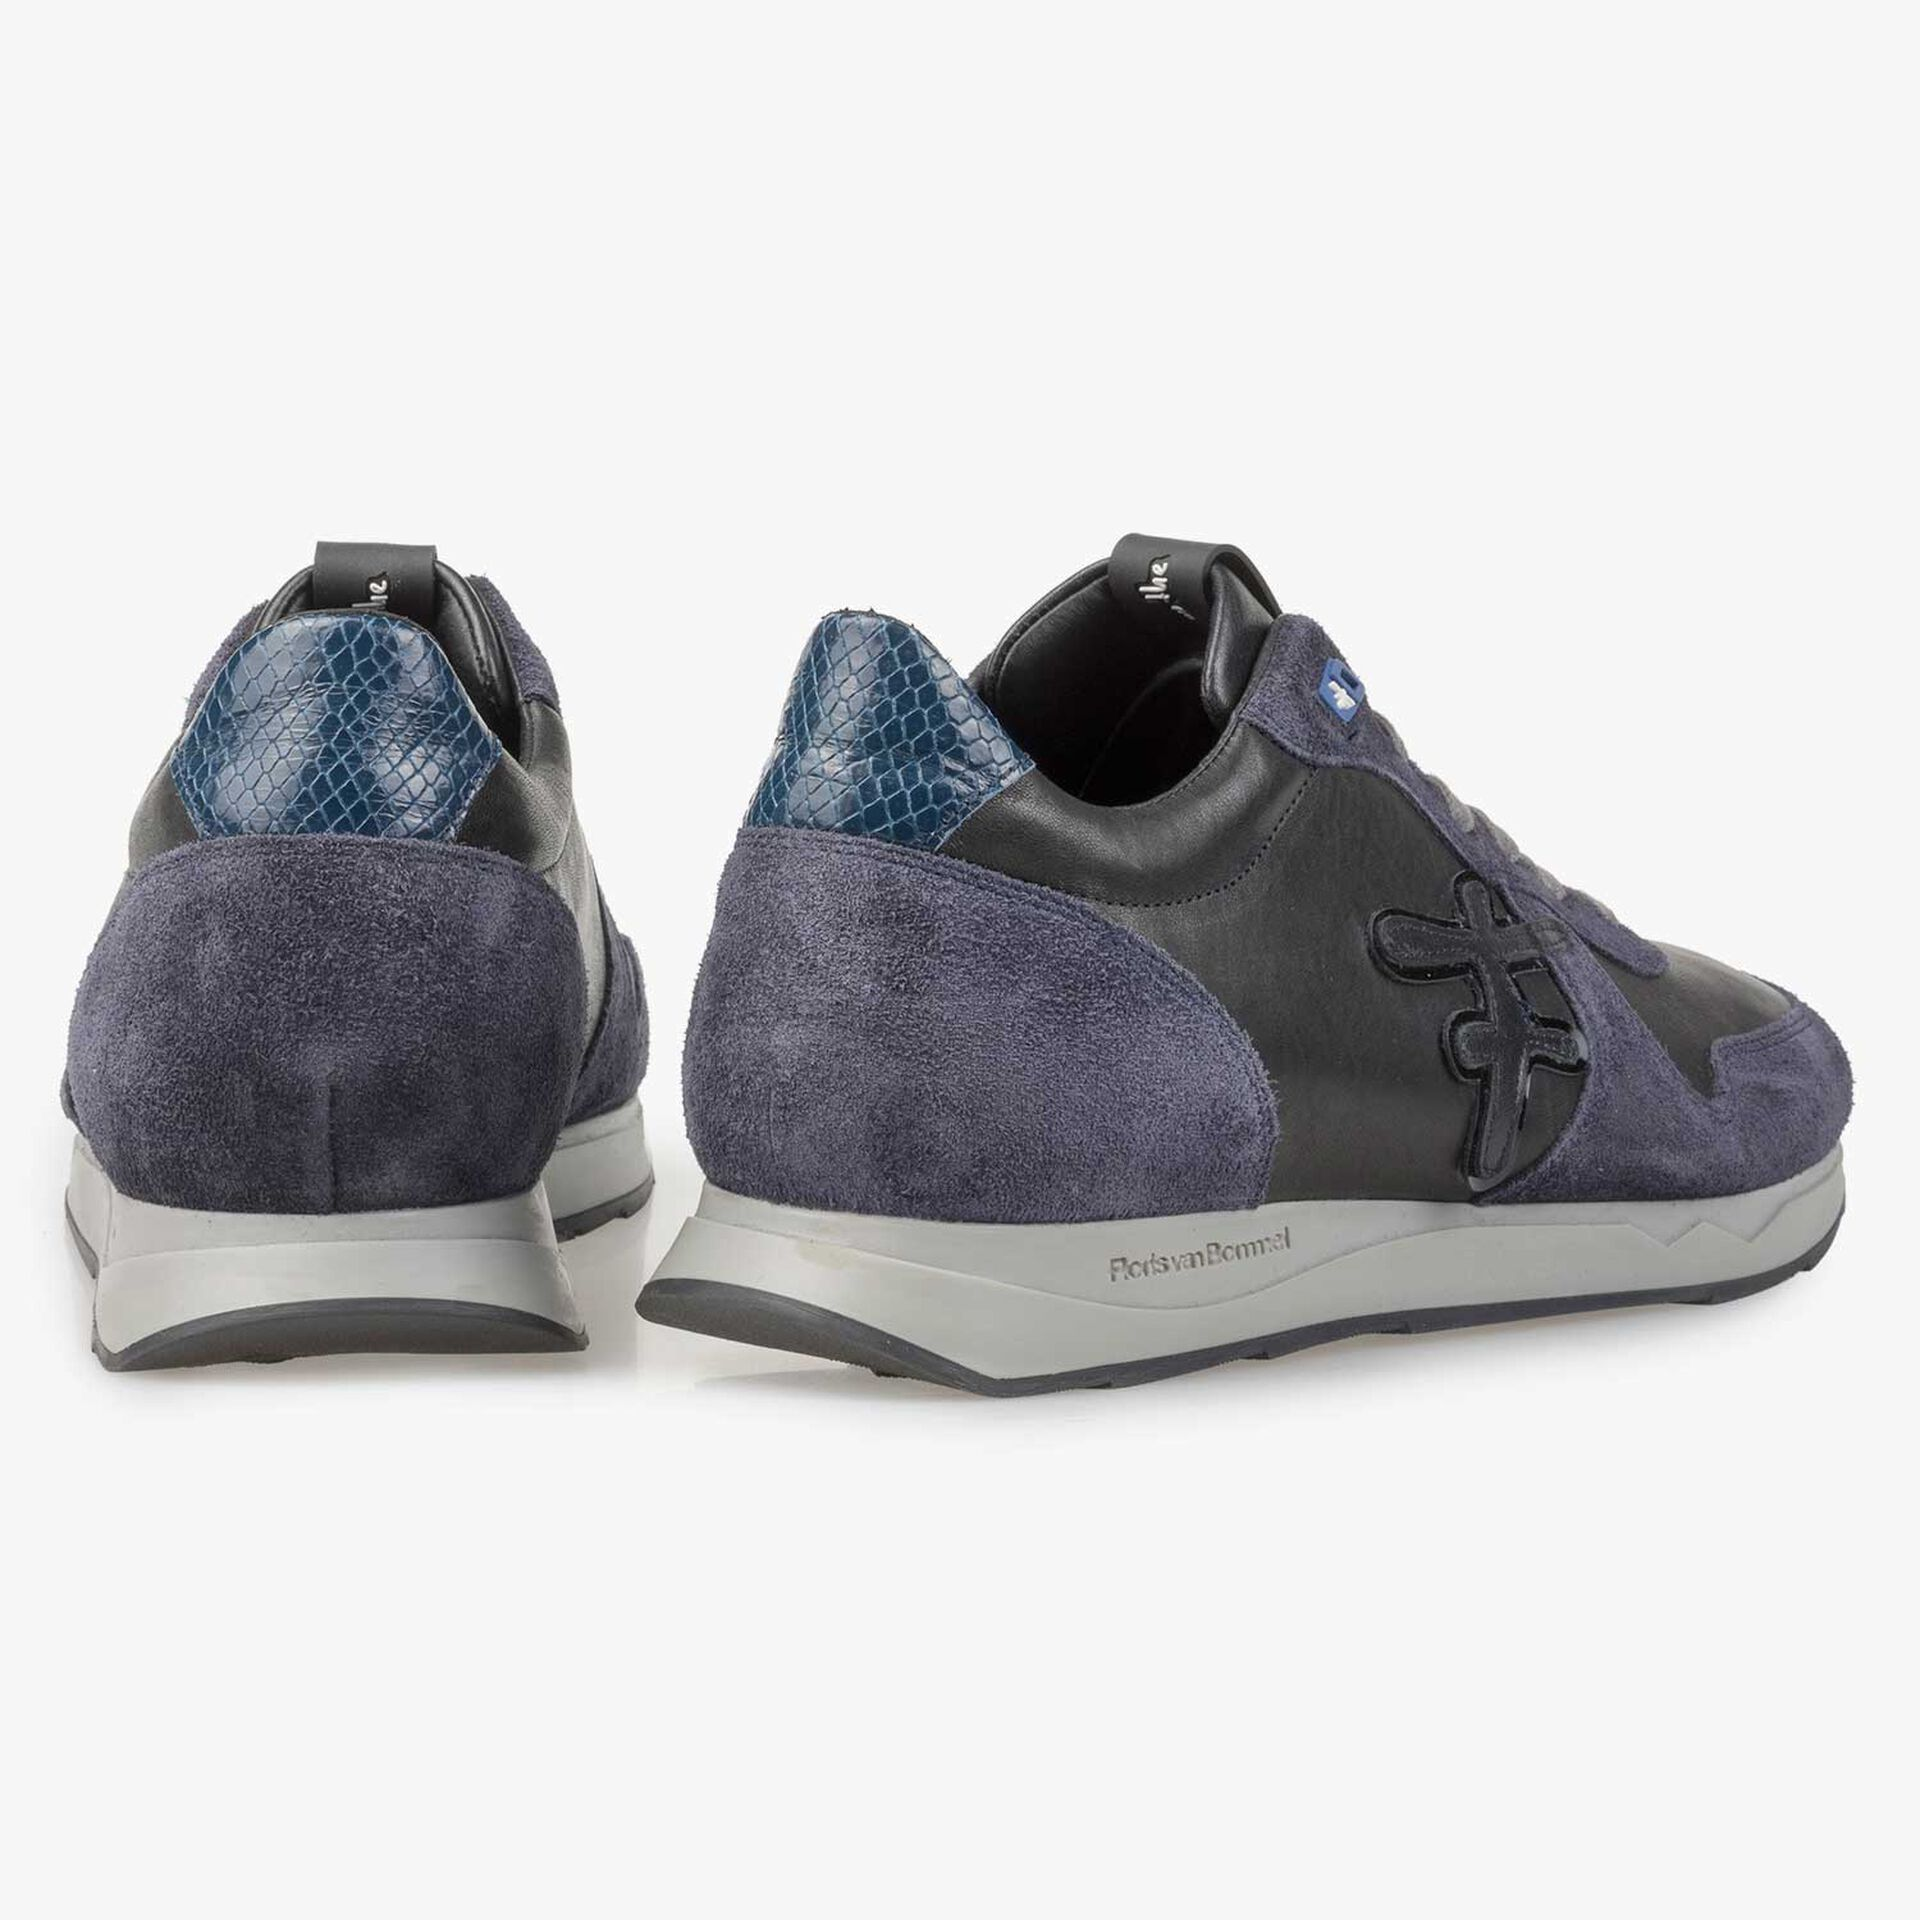 Nappa leather sneaker with blue suede leather accents